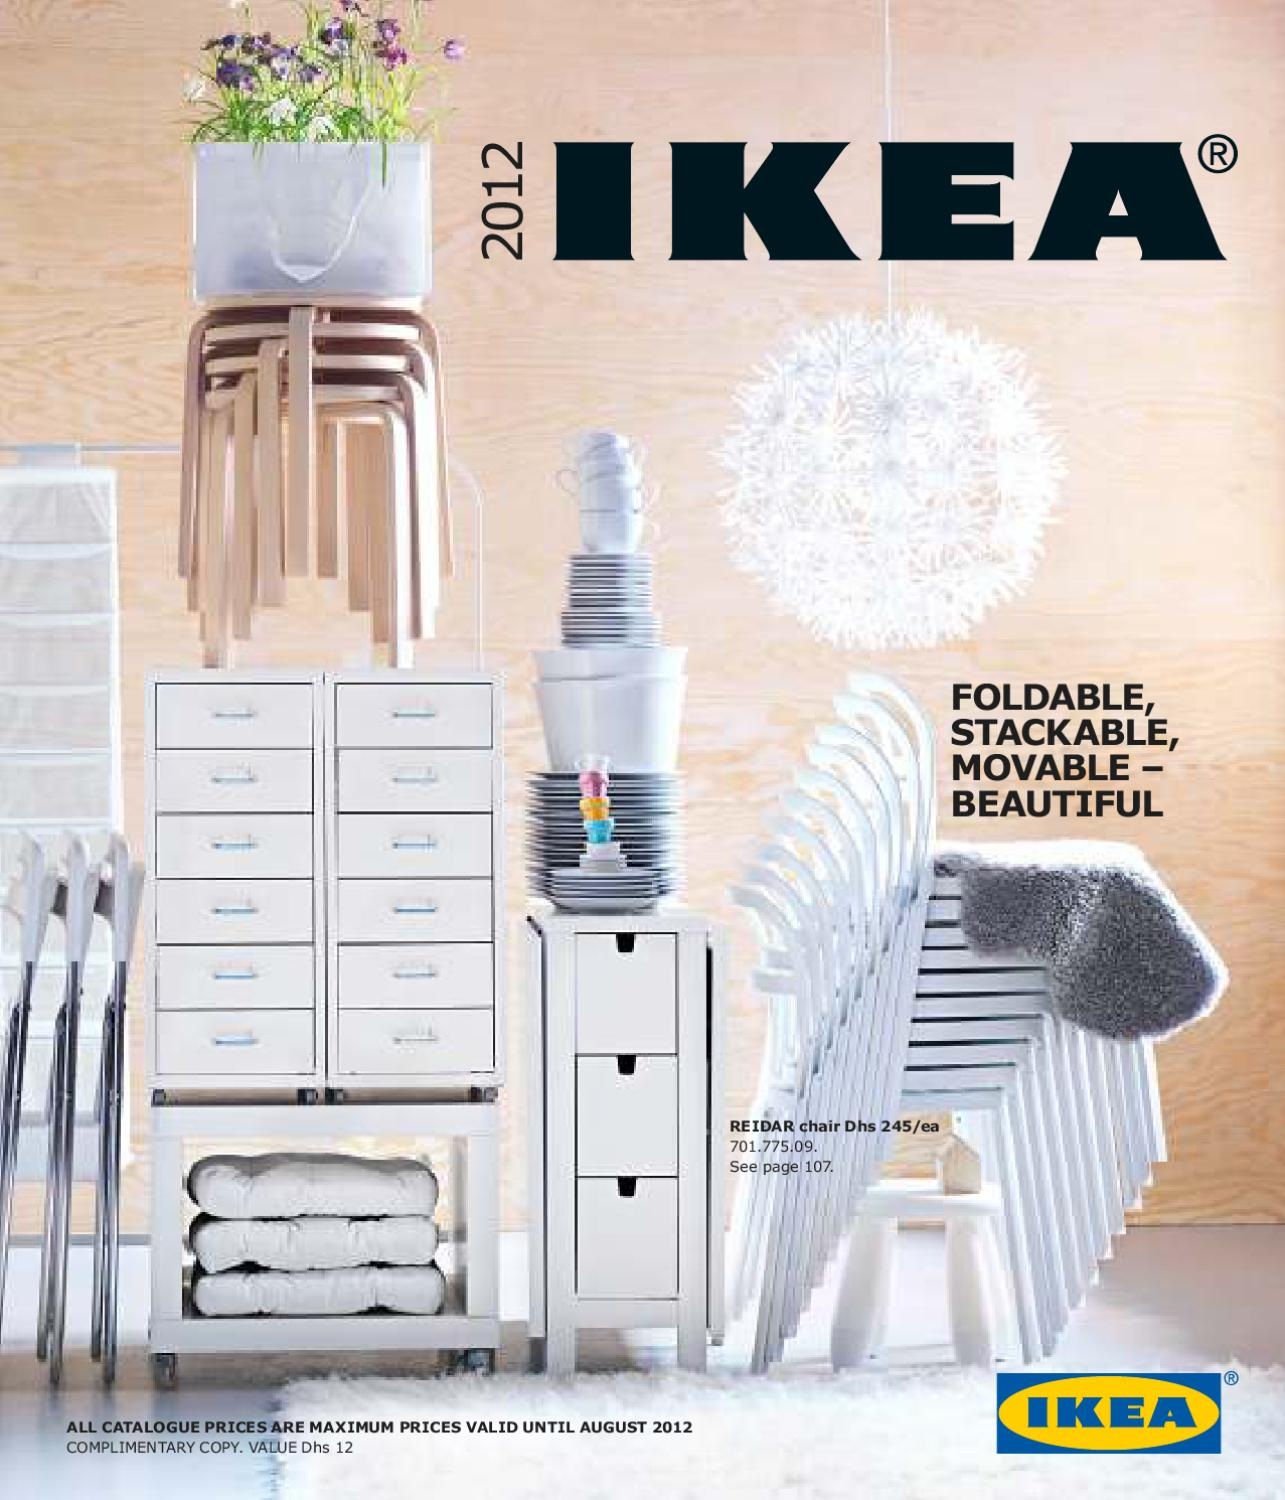 Ikeaaa by M M issuu